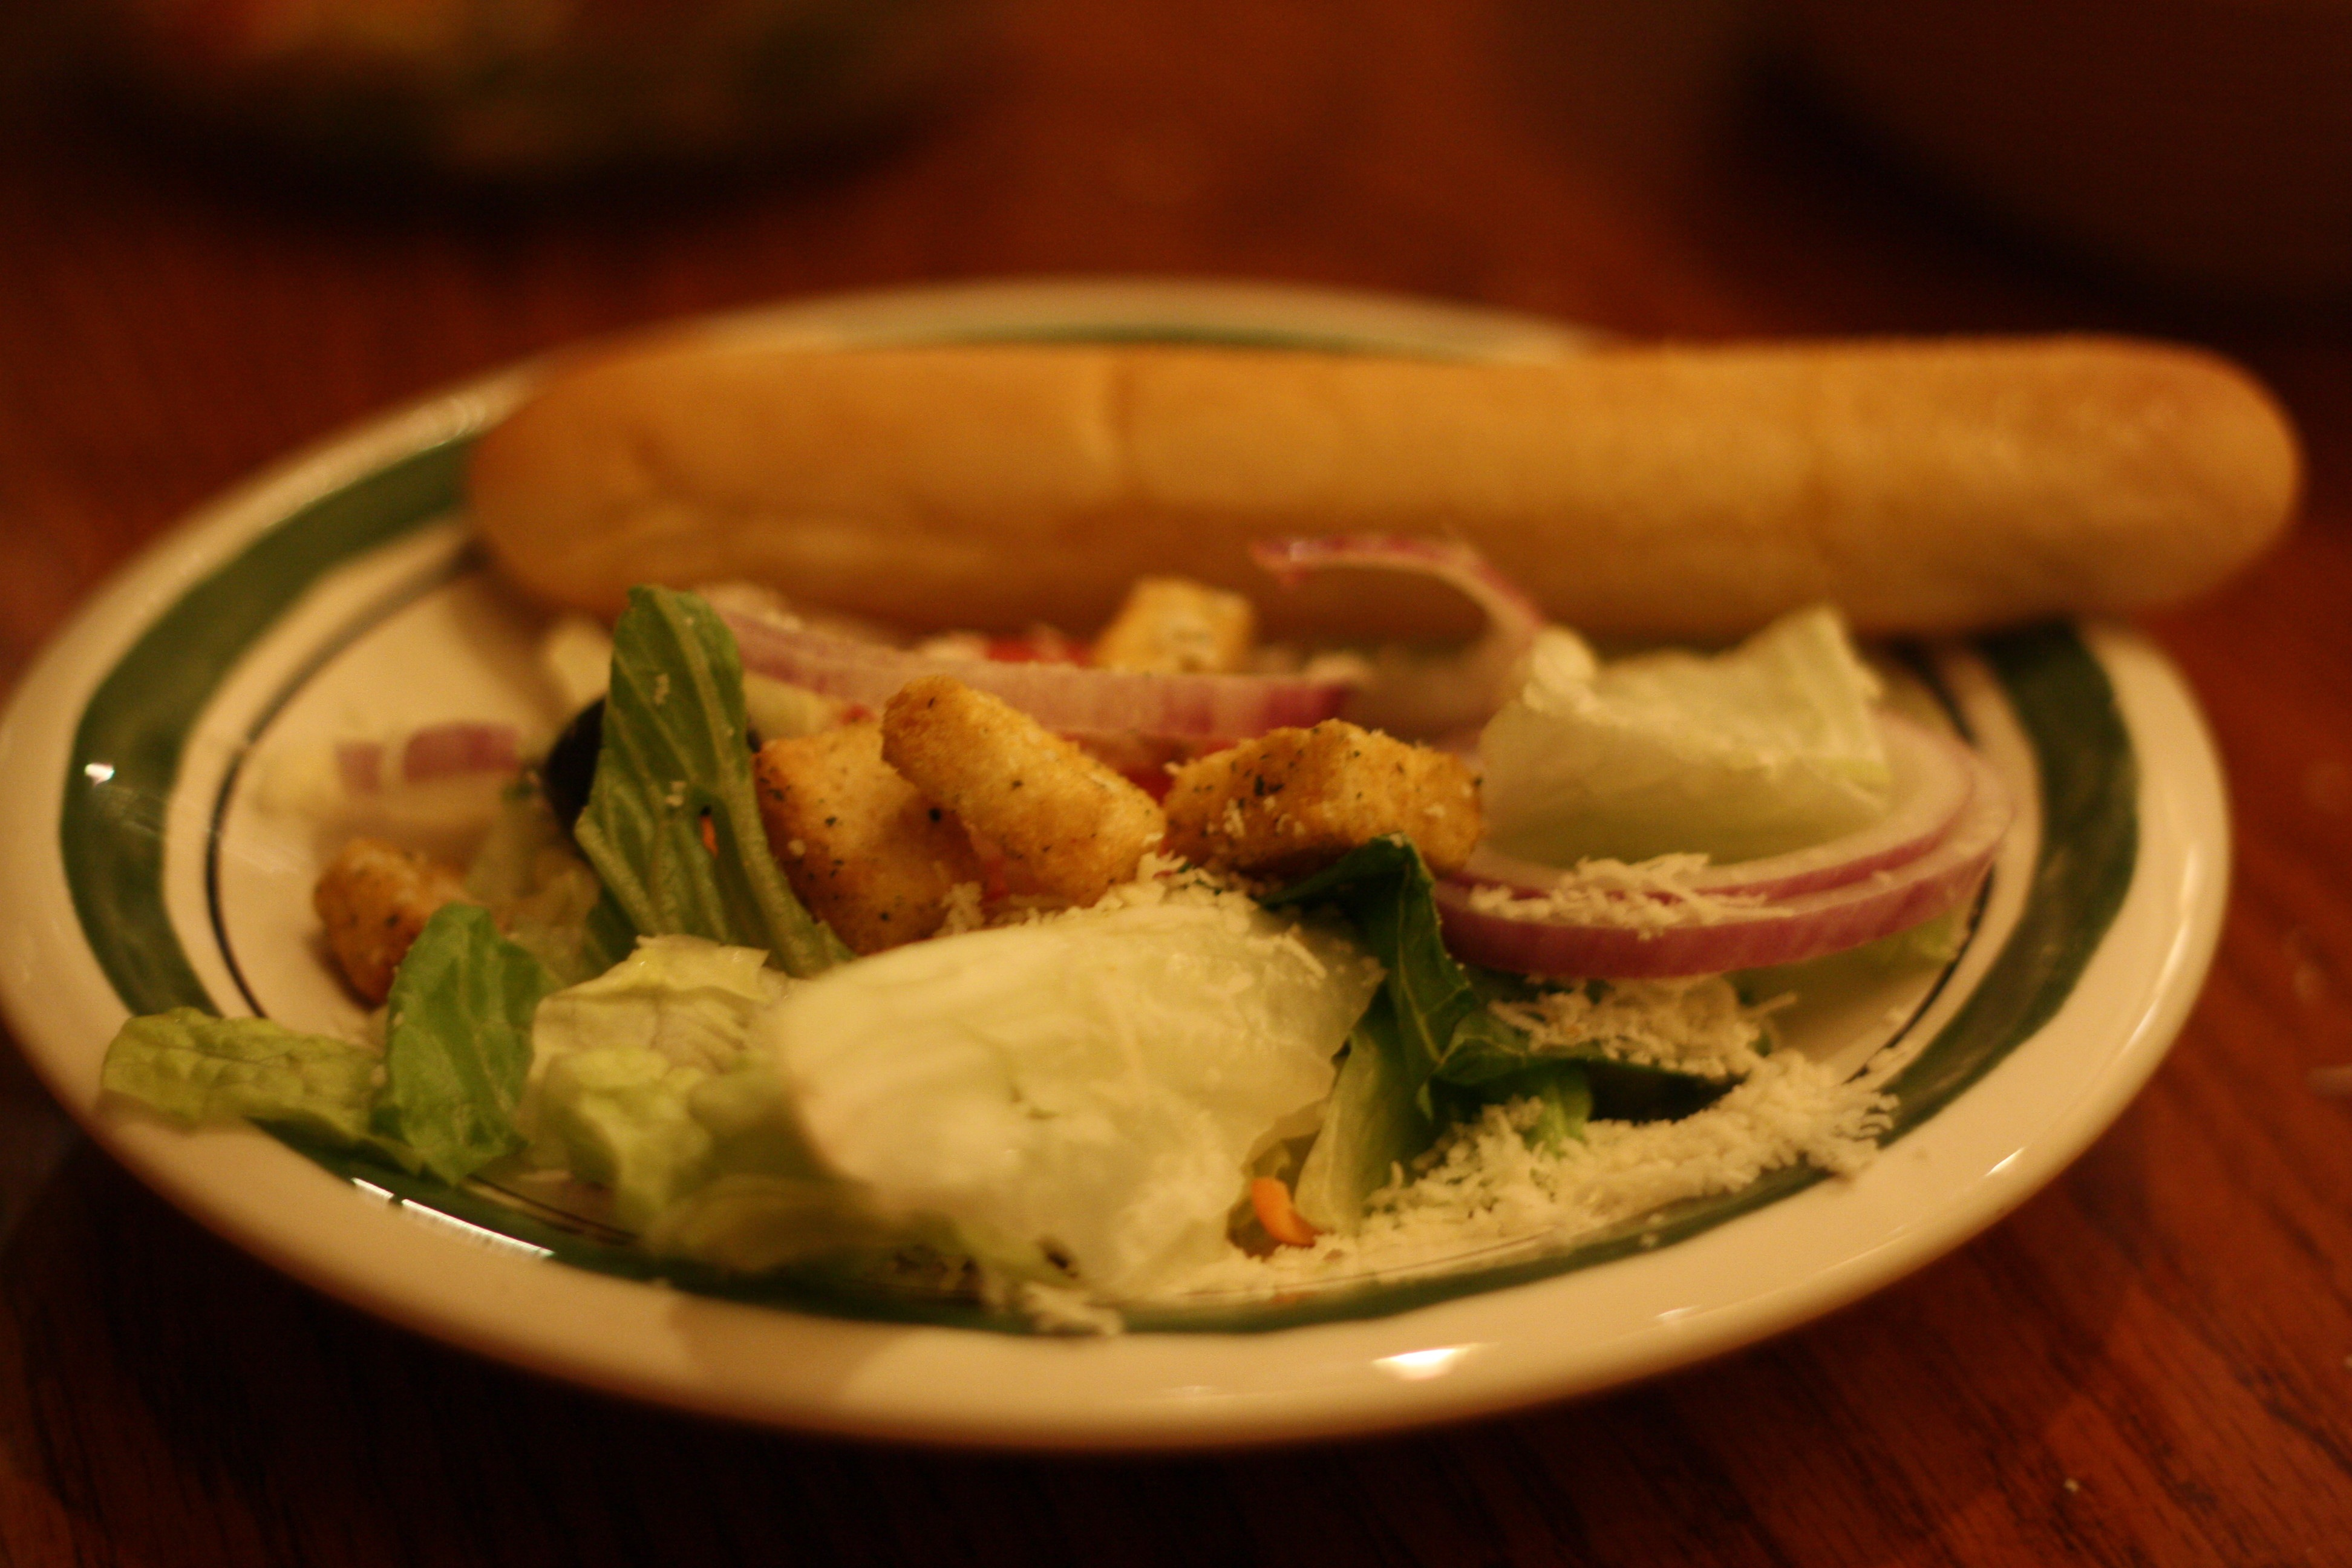 Soup, Salad, and Breadstick(s)